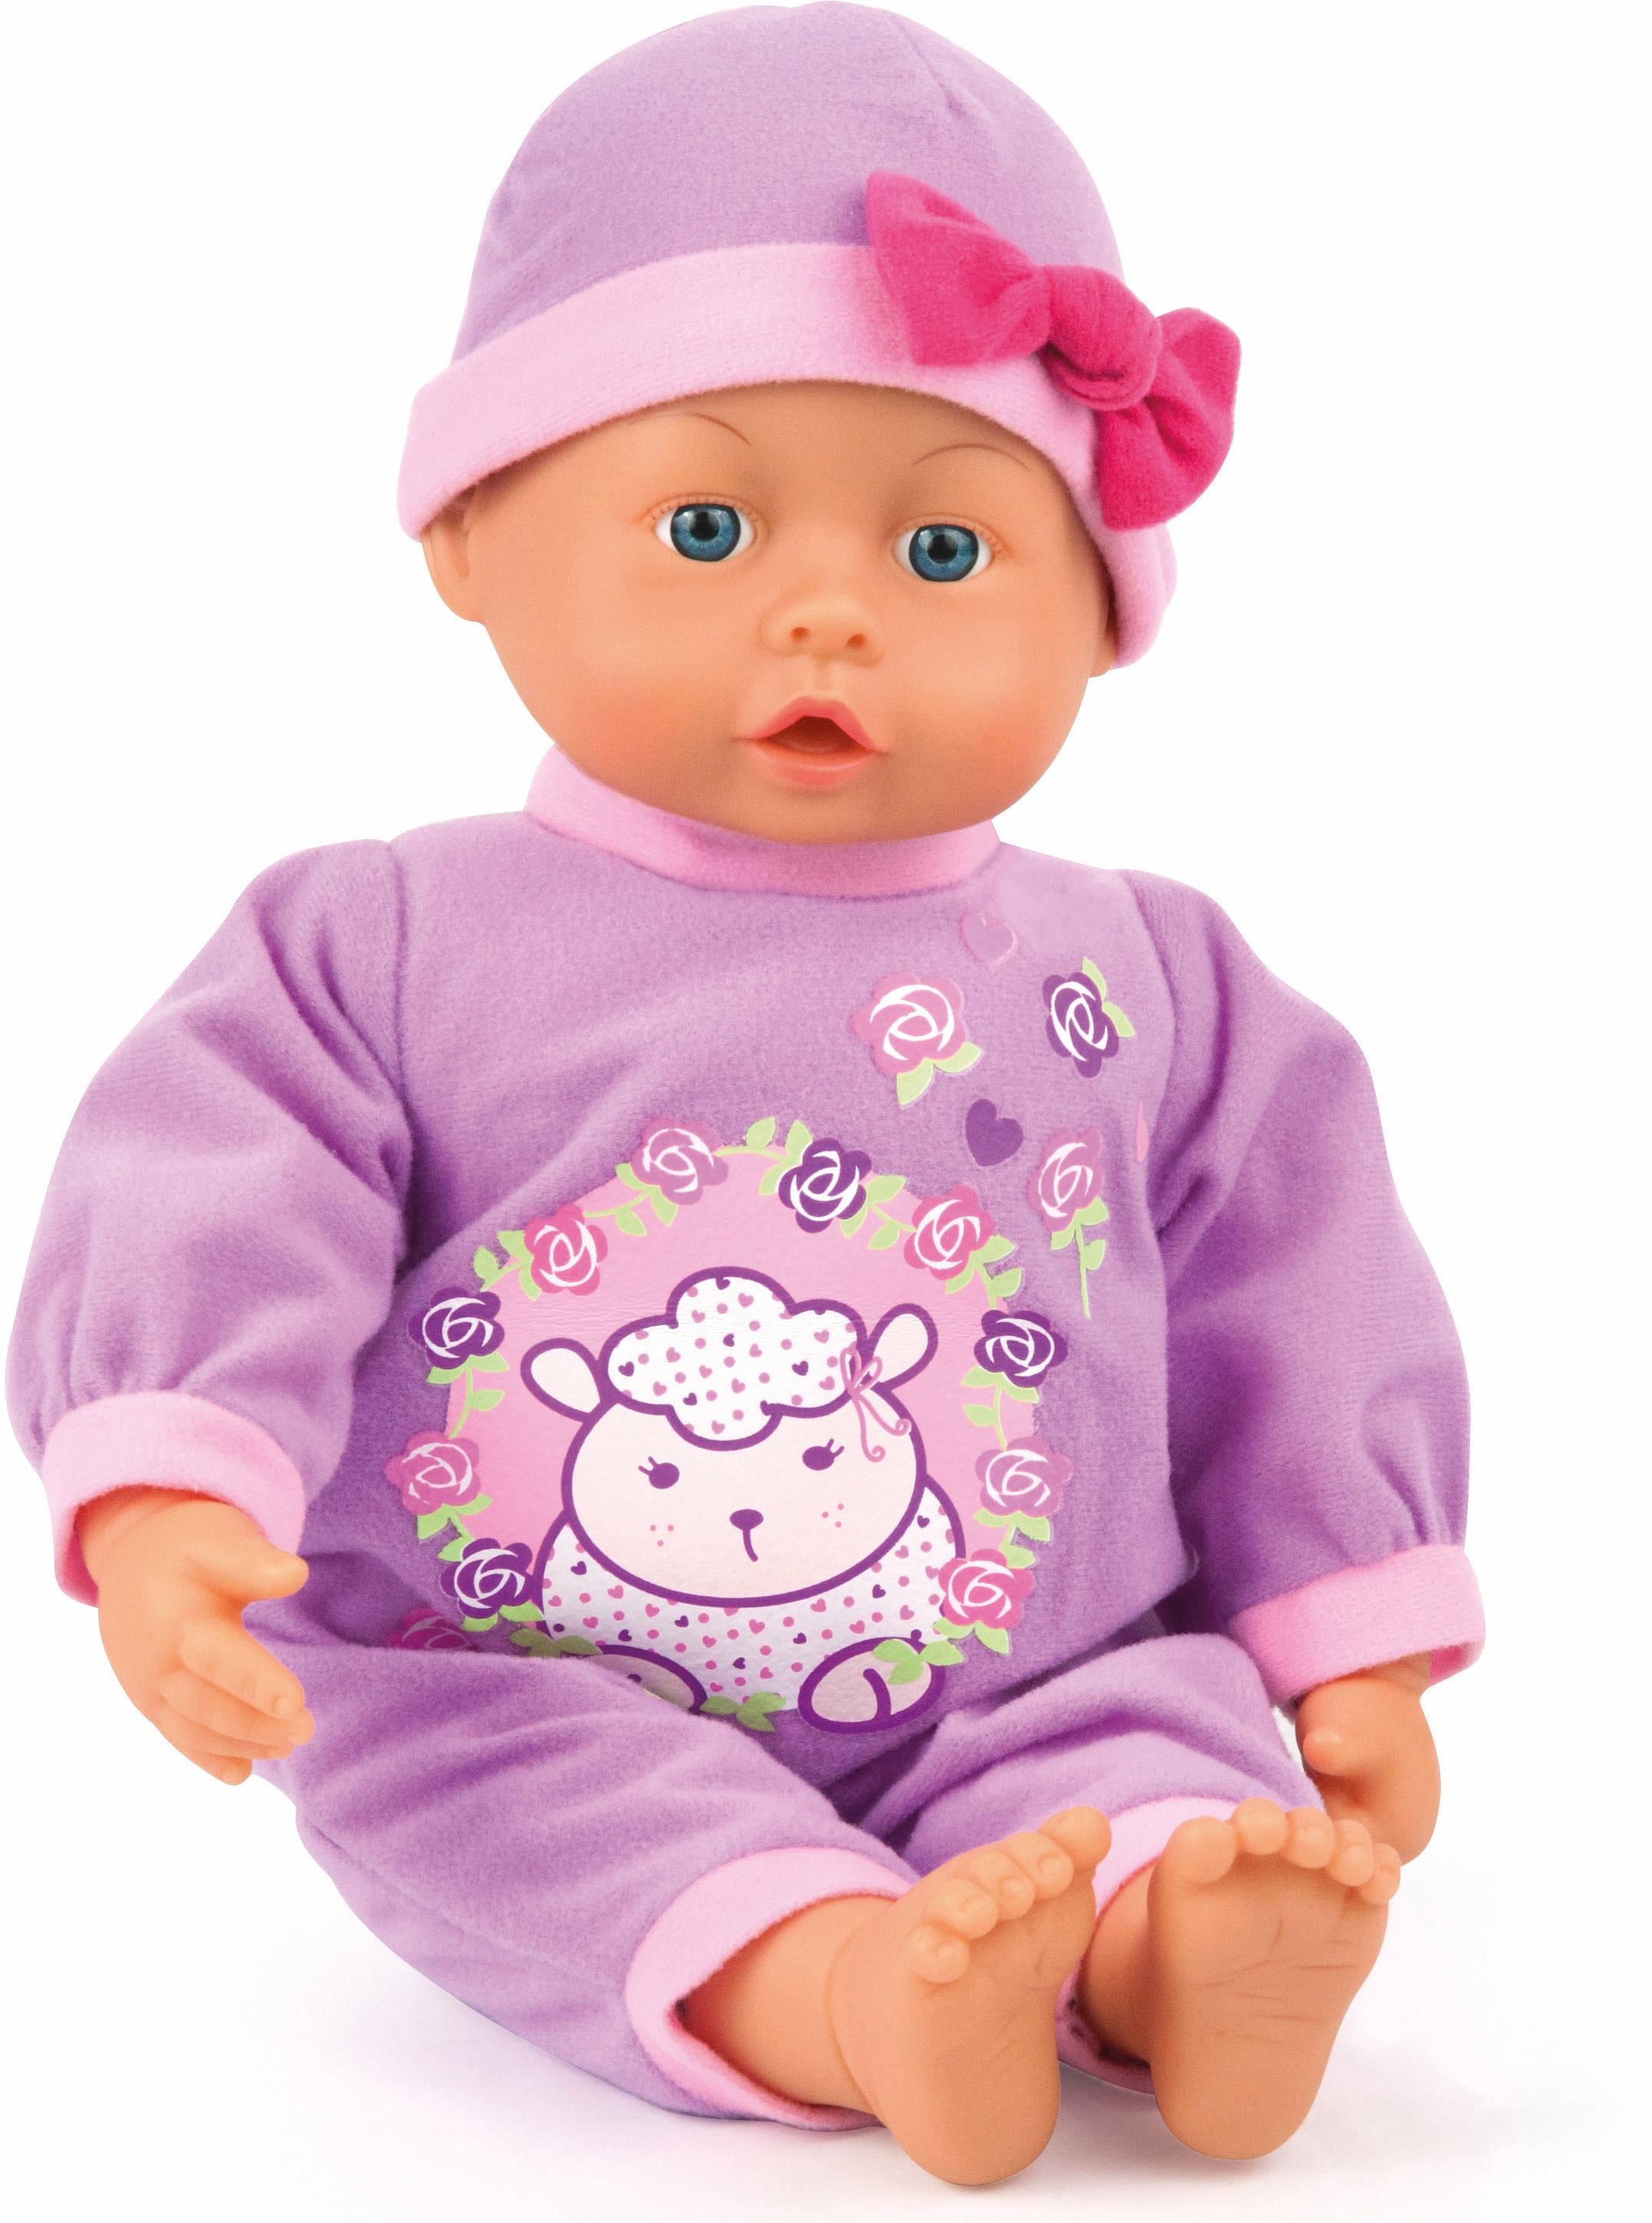 Image of Bayer Design Babypuppe mit Funktion, »First Words Baby, lila 38 cm«